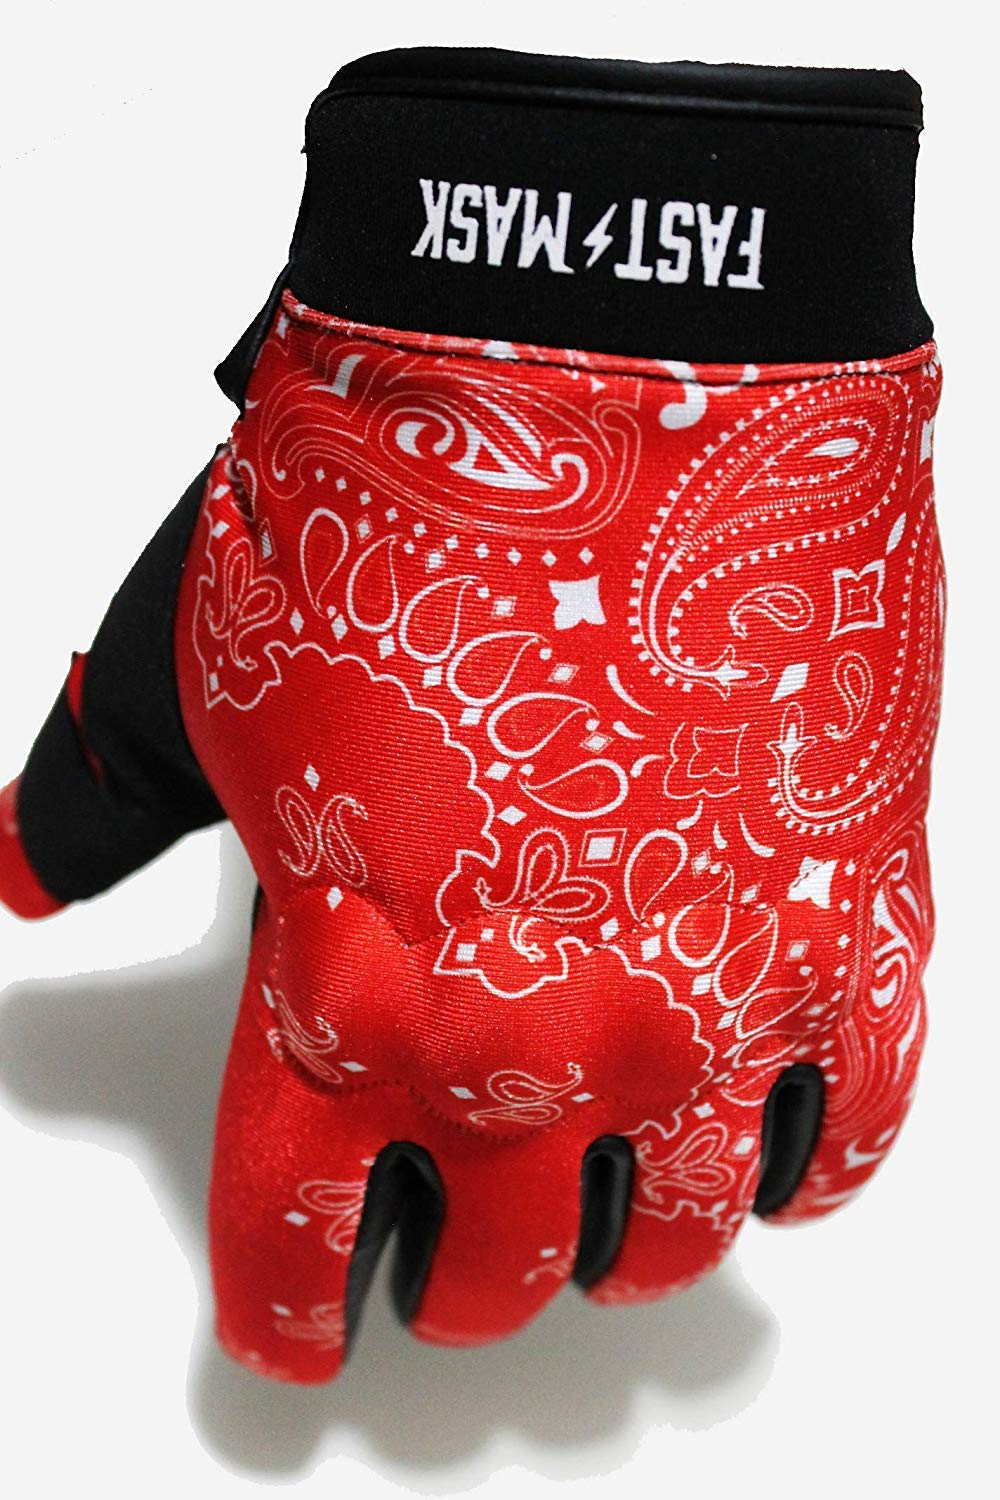 Knuckle Protection Fast Mask Motorbike Glove Leather Reinforced Palm Motorcycle Gloves Riding Gloves Perfect as Cycling Gloves M, RED Mountain Bike Gloves